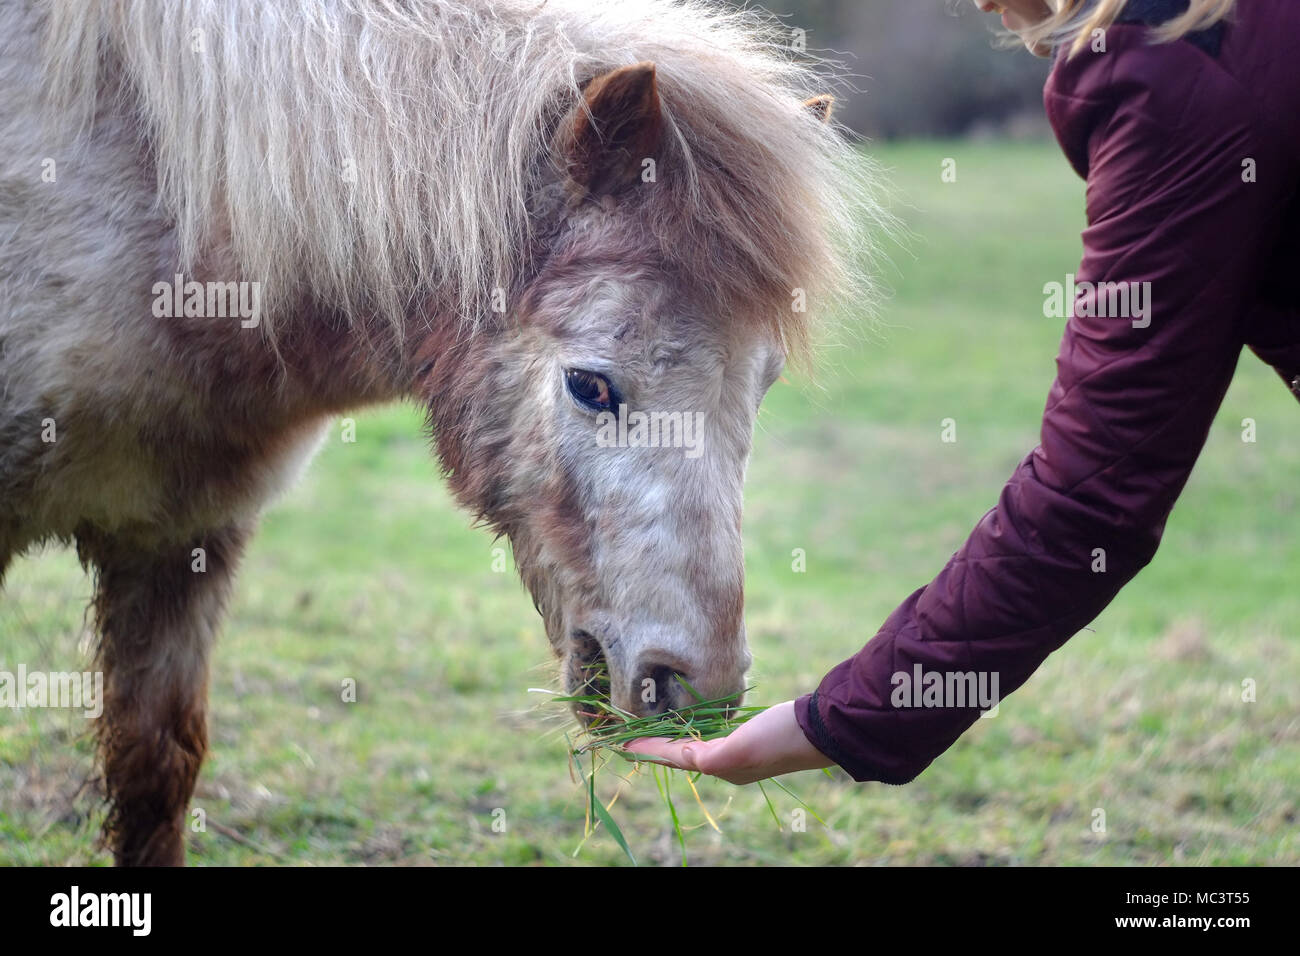 Close up of a girl feeding a shetland pony by hand. - Stock Image